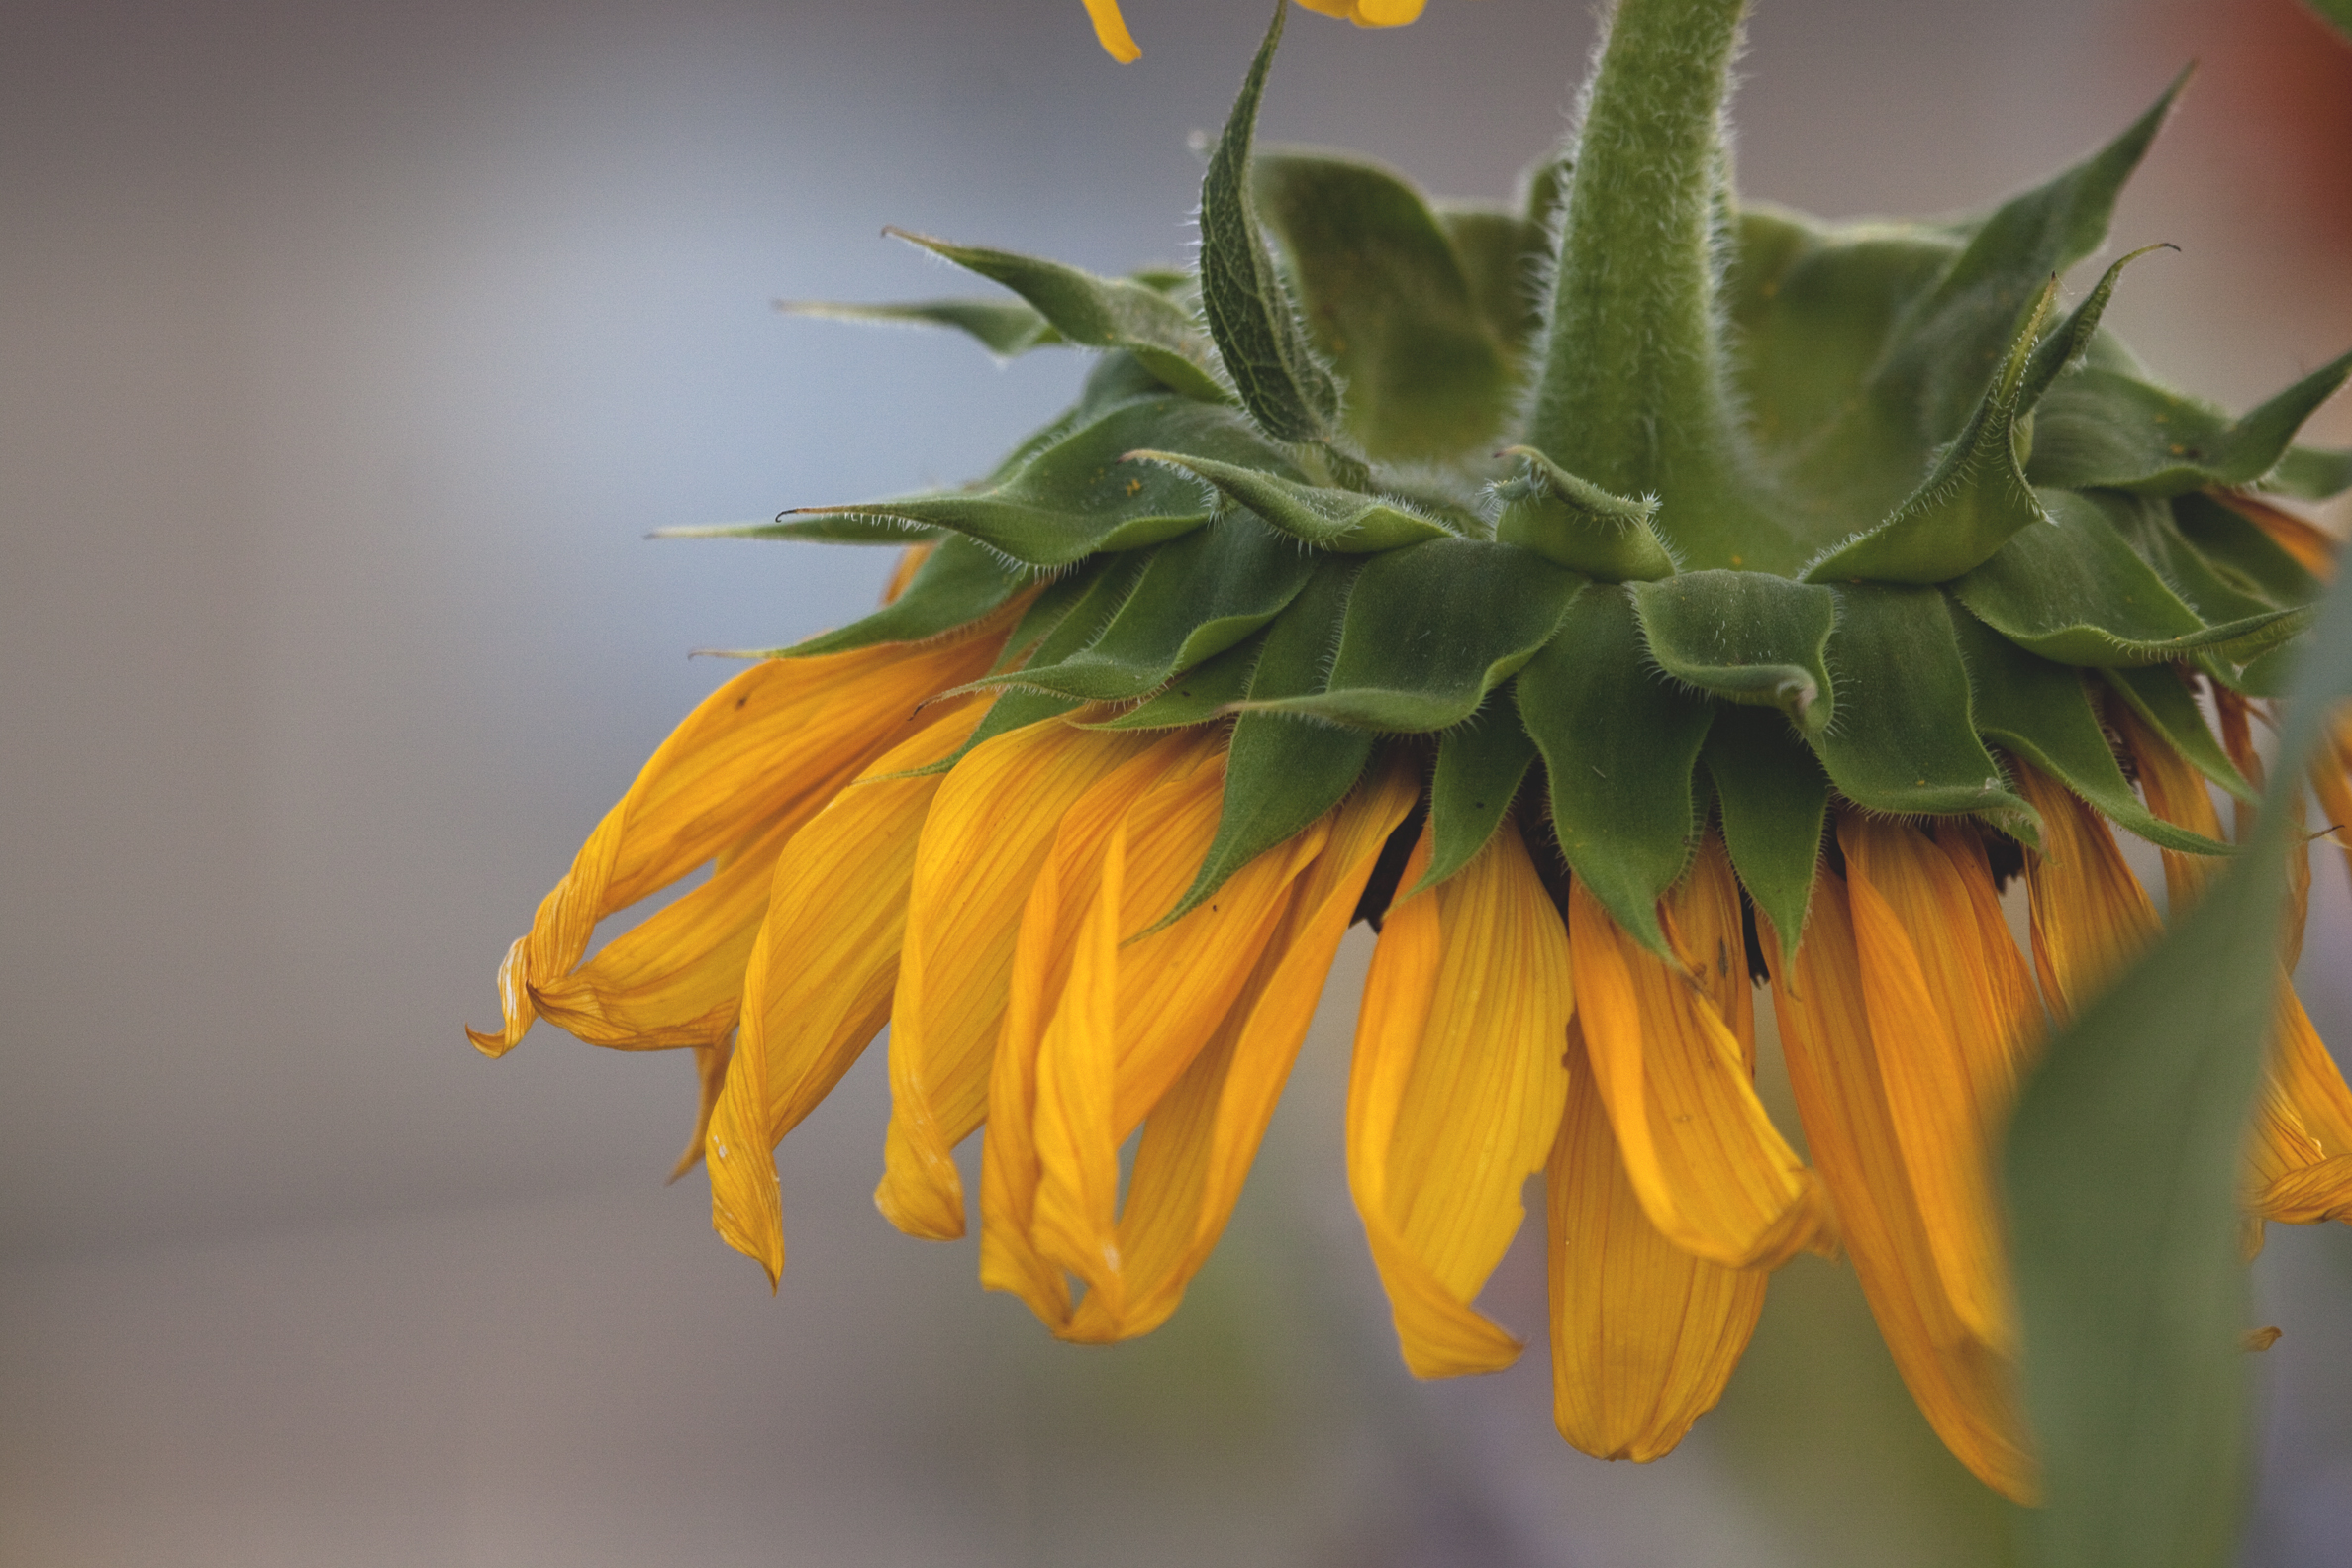 sunflower droop2